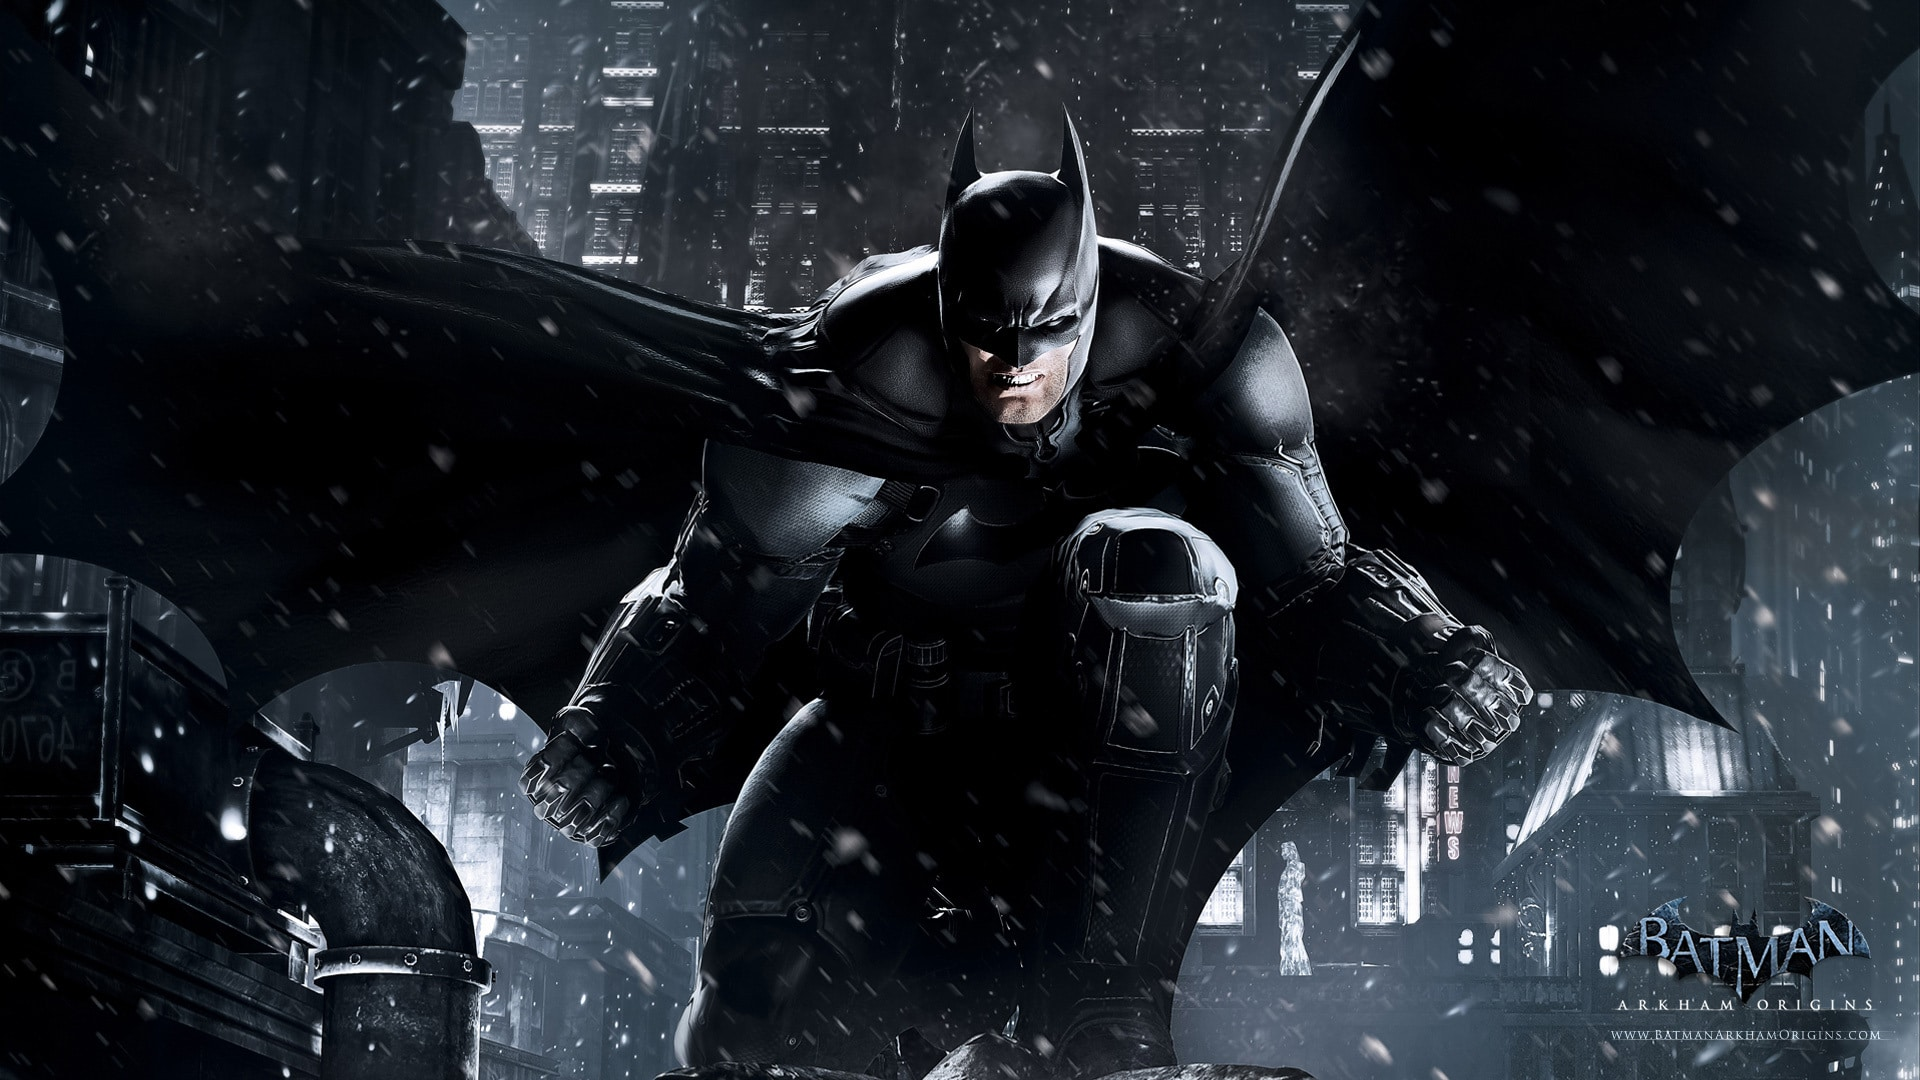 DC's Batman Twitter Account May Have Tweeted About Robert Pattinson's Casting As The Dark Knight